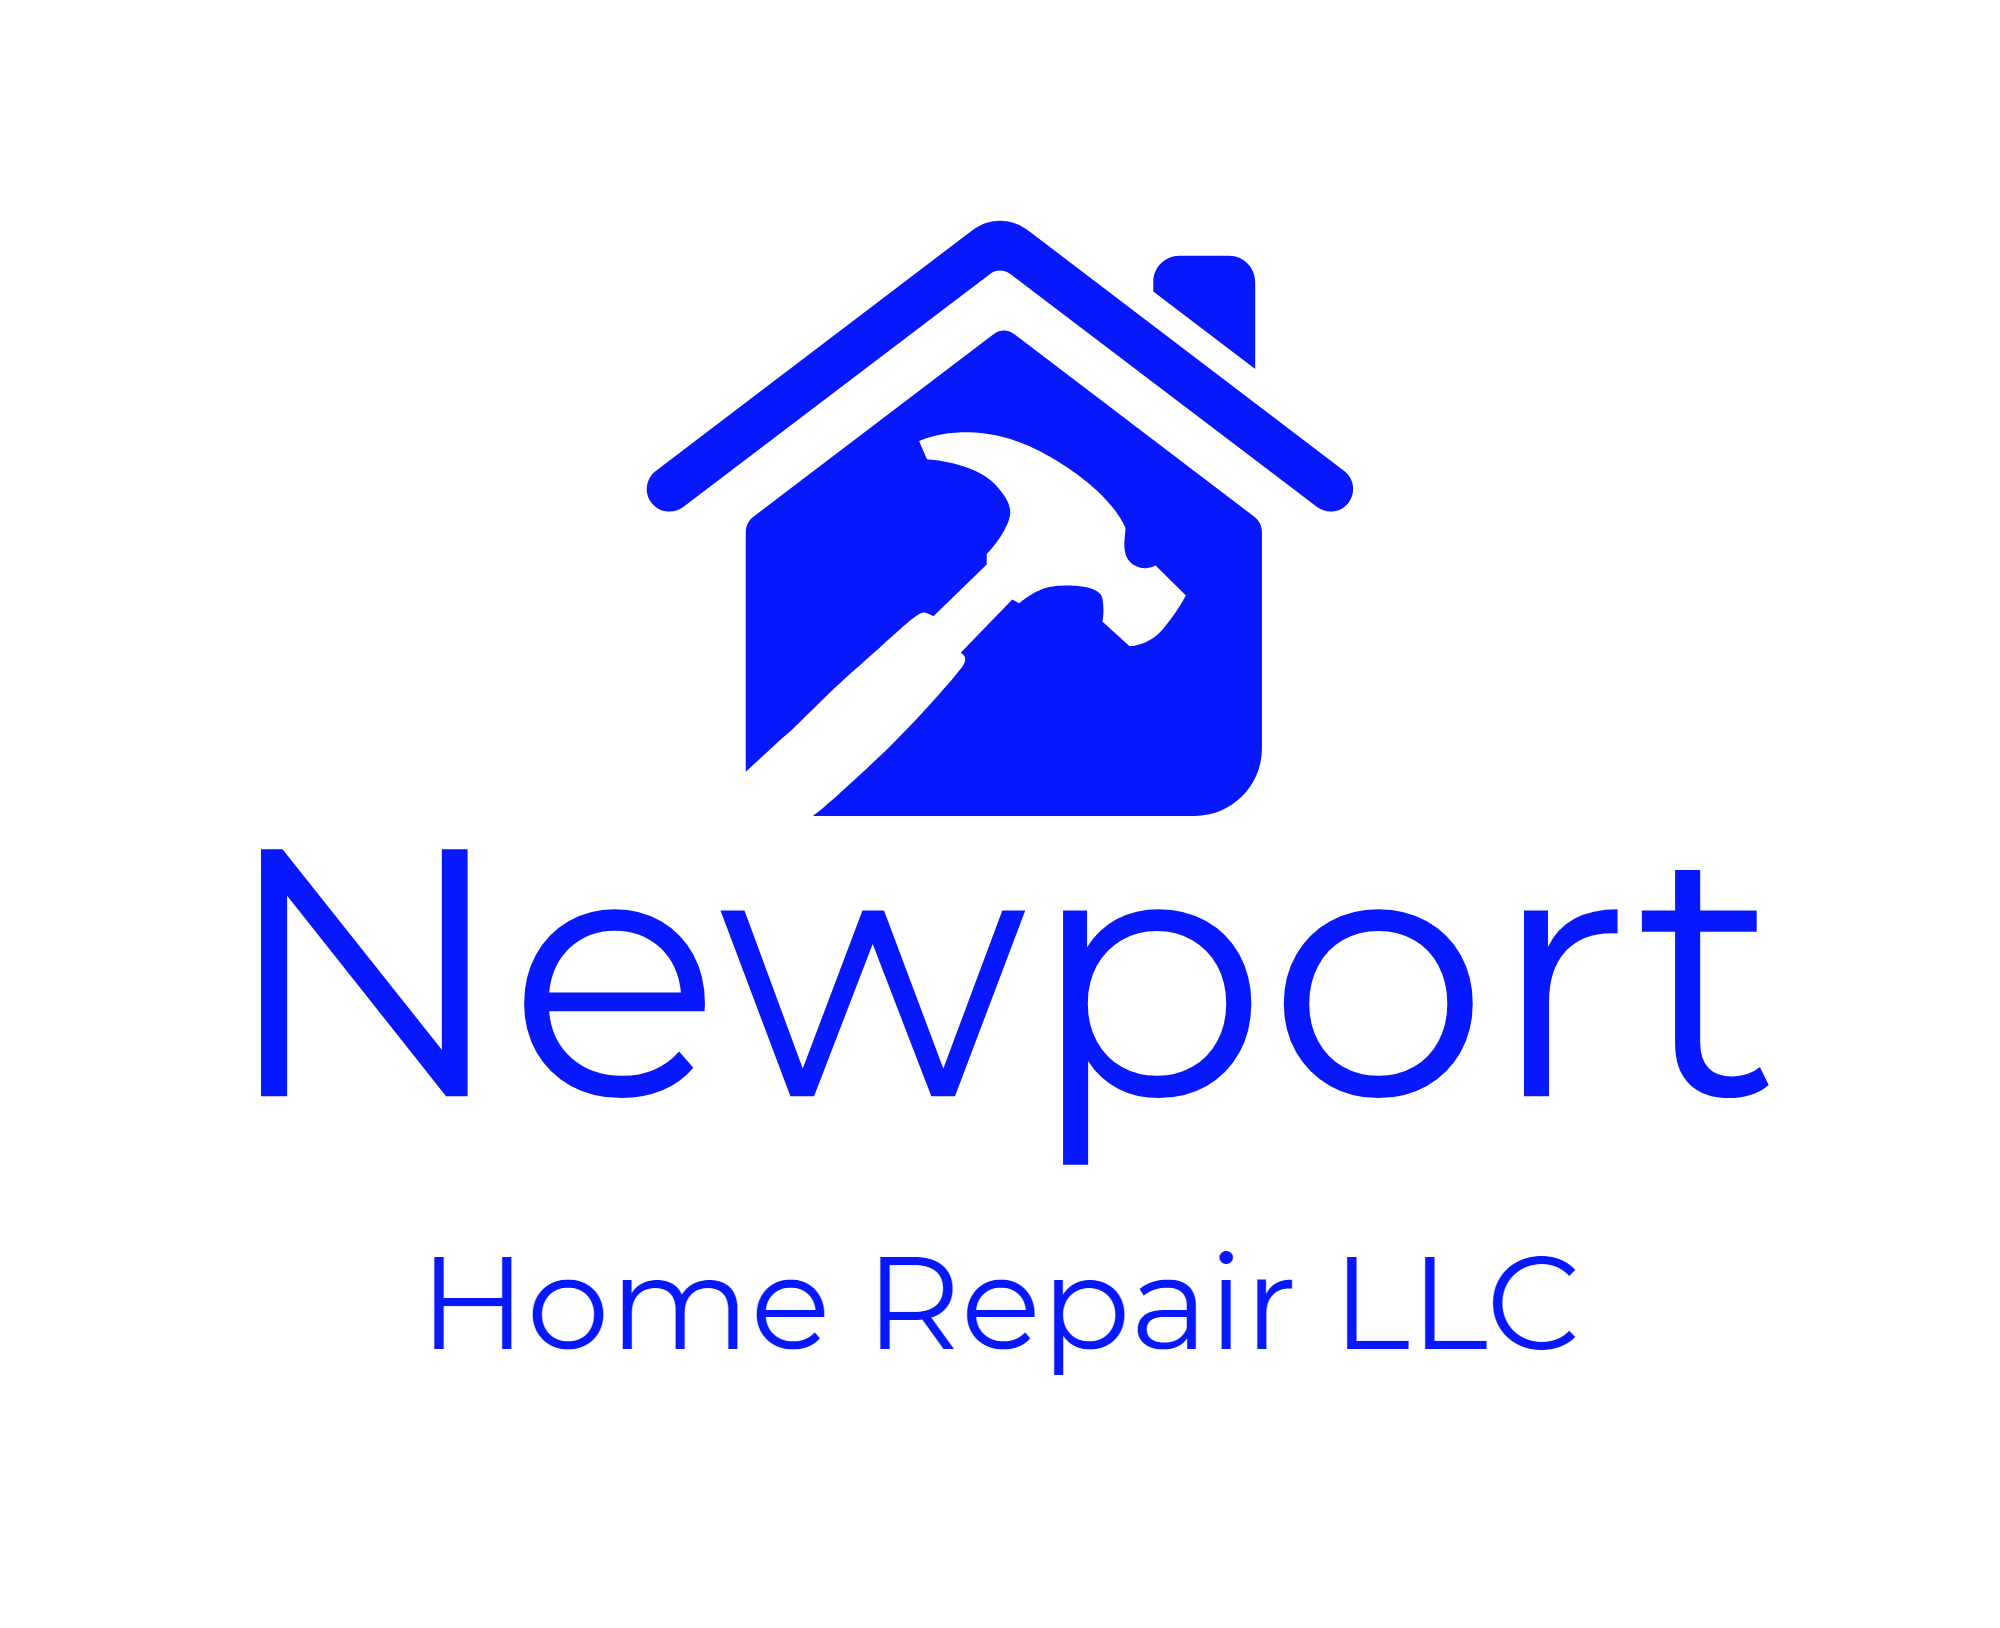 Newport Home Repair LLC - Painting and Staining